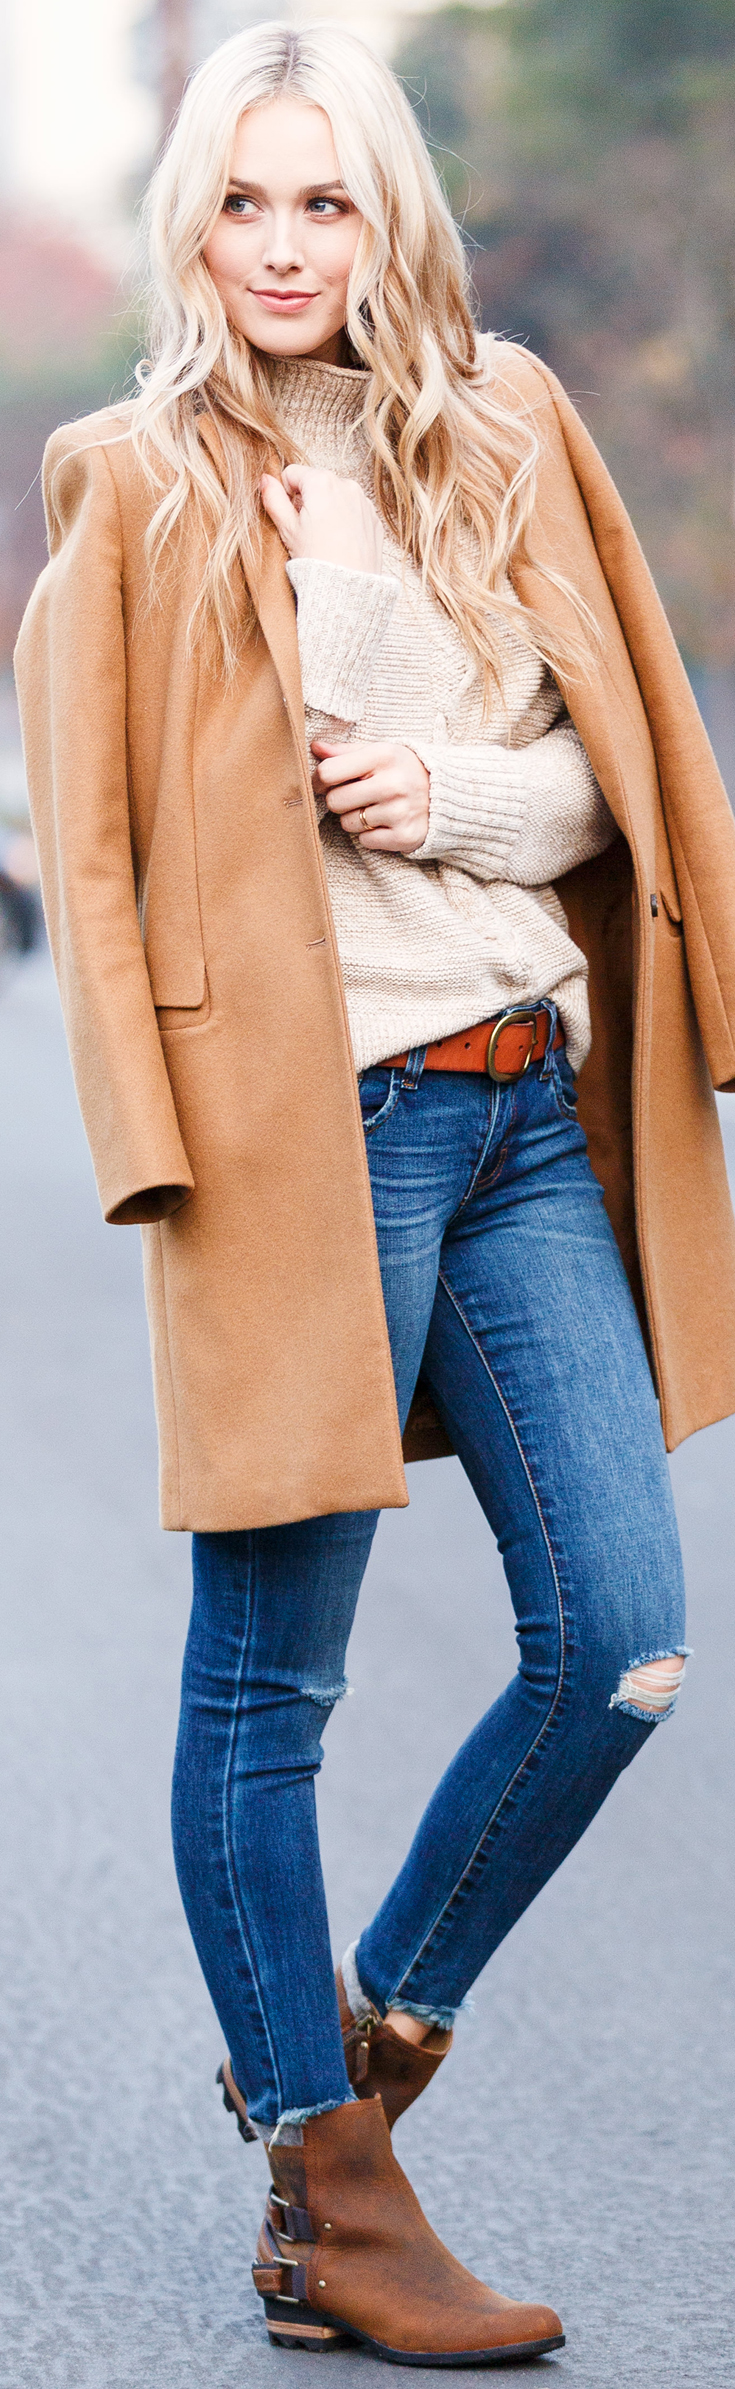 Holiday Travel Style - broken jeans, sweater, leather booties and leather belt - Sheridan Gregory -  Blue Eyed Finch